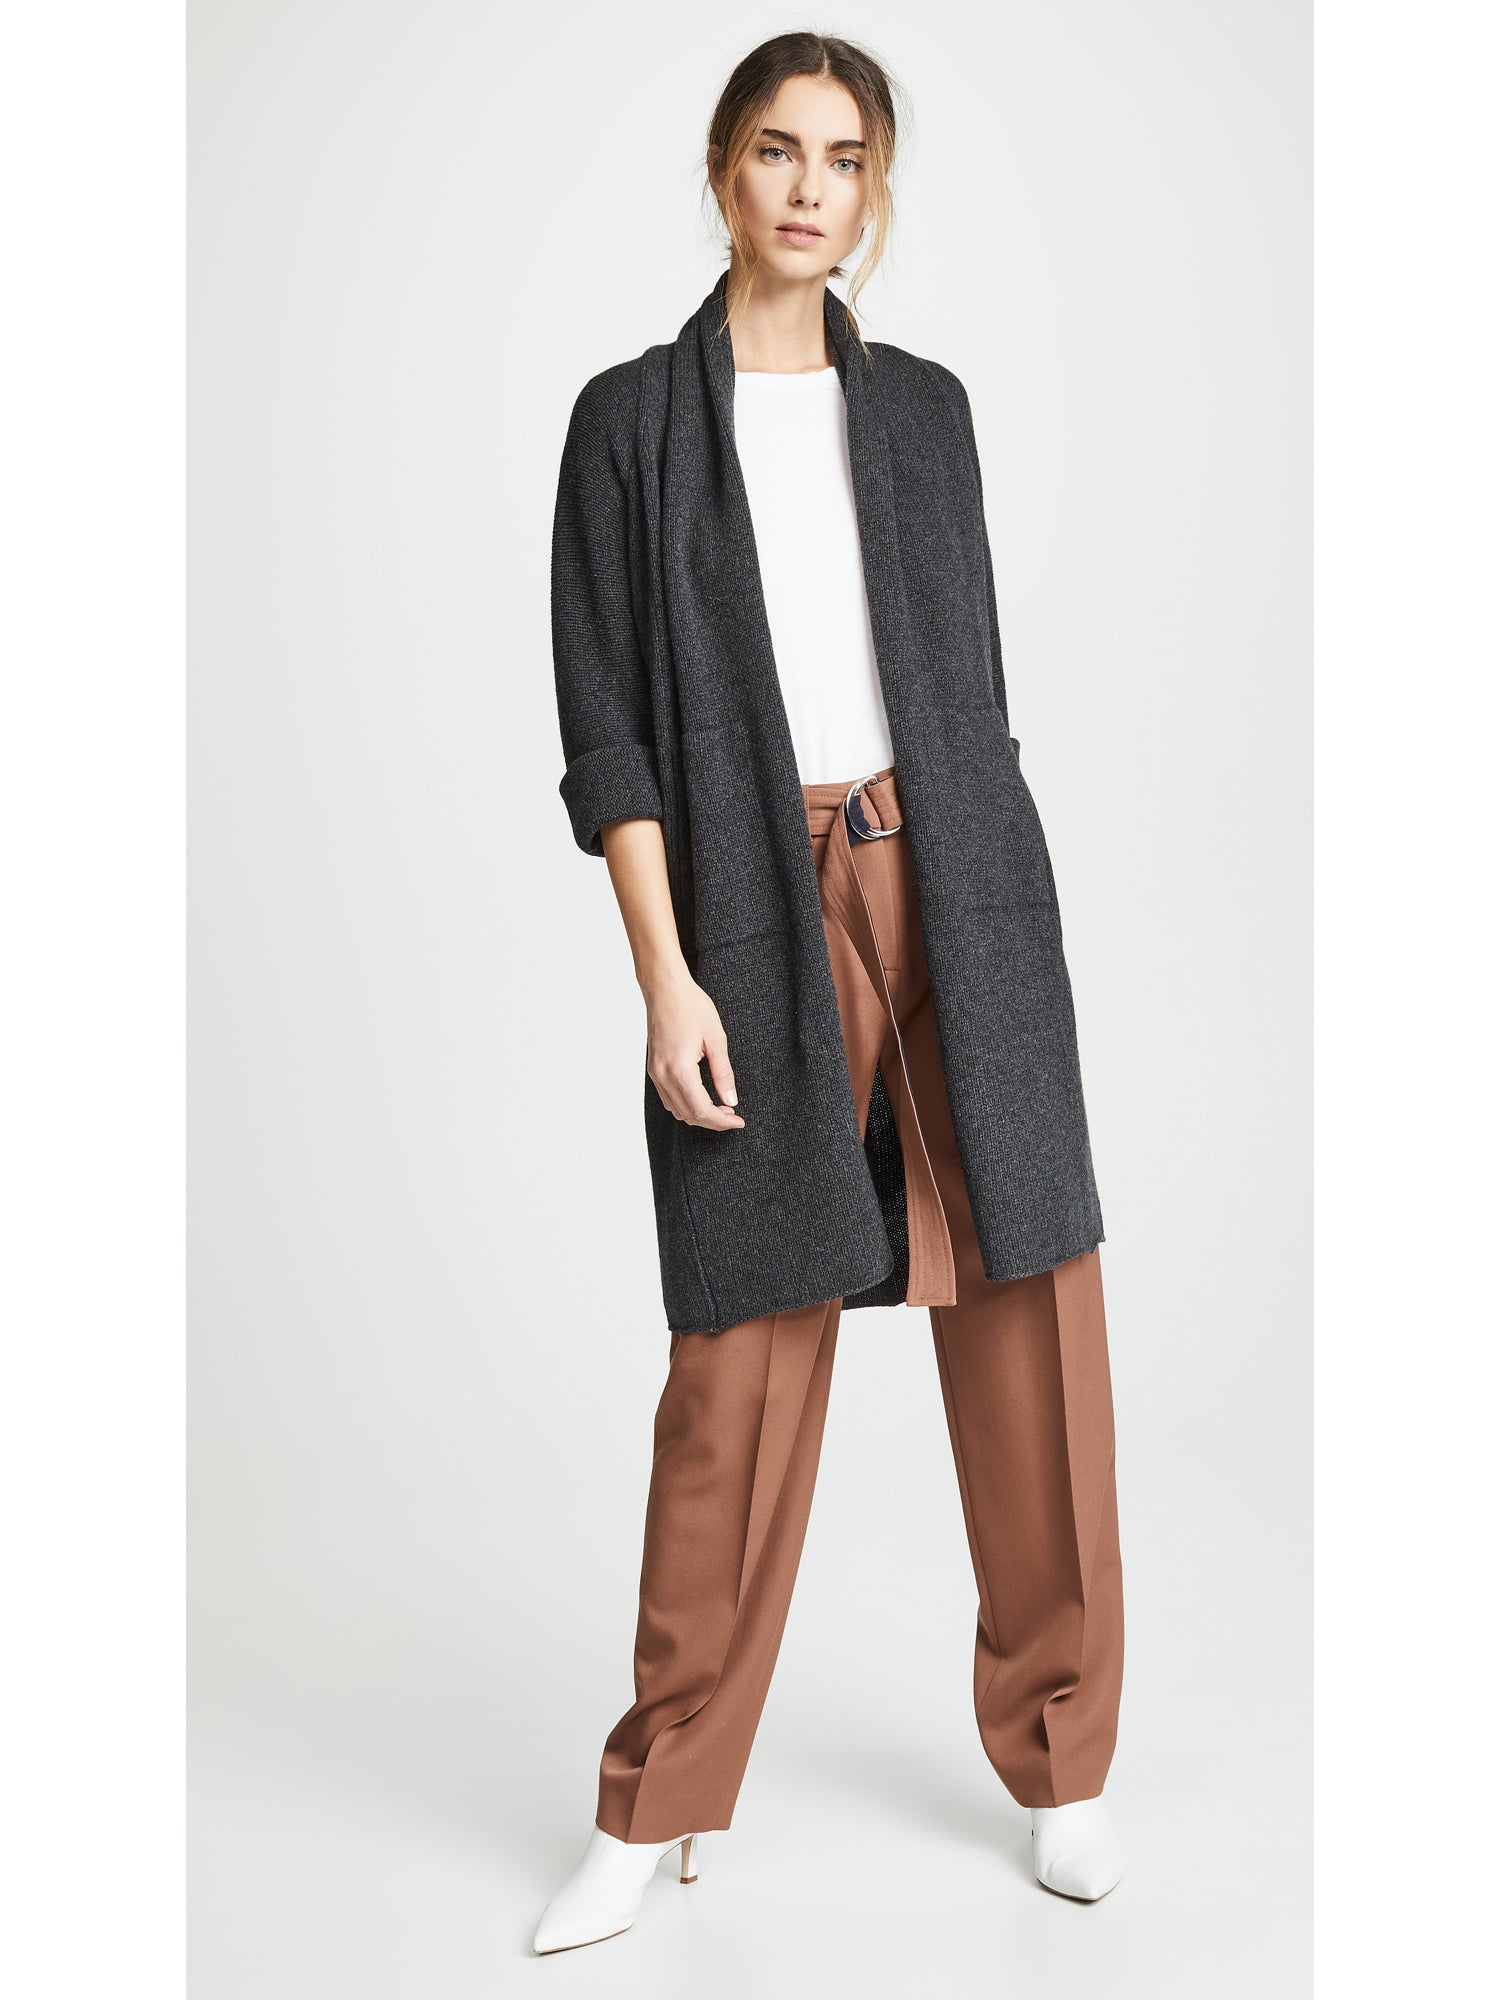 Vince Shawl Collar Cardigan - Heather Carbon Grey Sweater | TILDEN